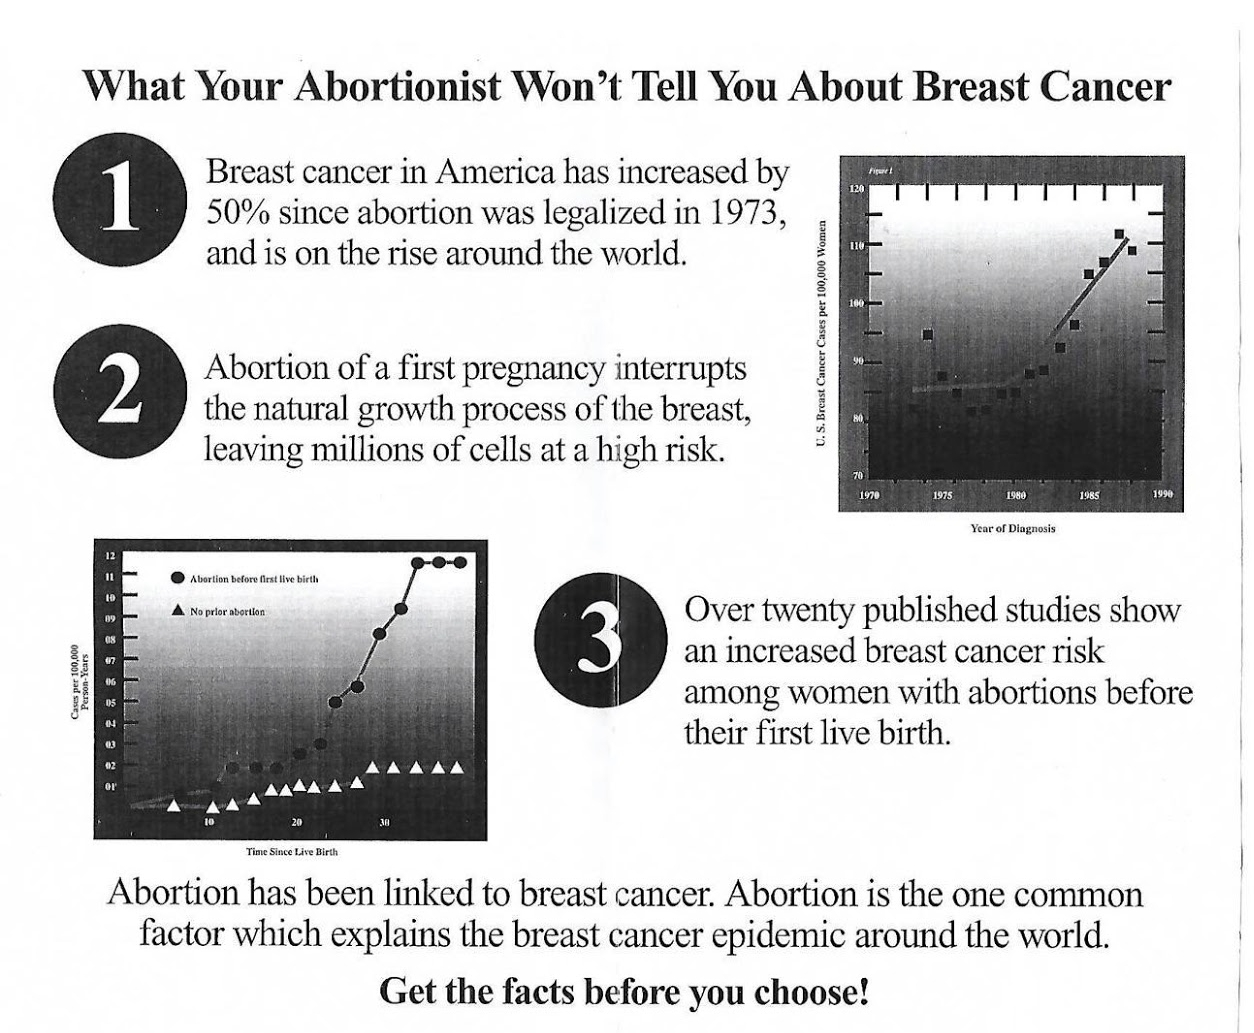 Pamphlet given out by a CPC in Connecticut with false medical information about abortion and breast cancer.